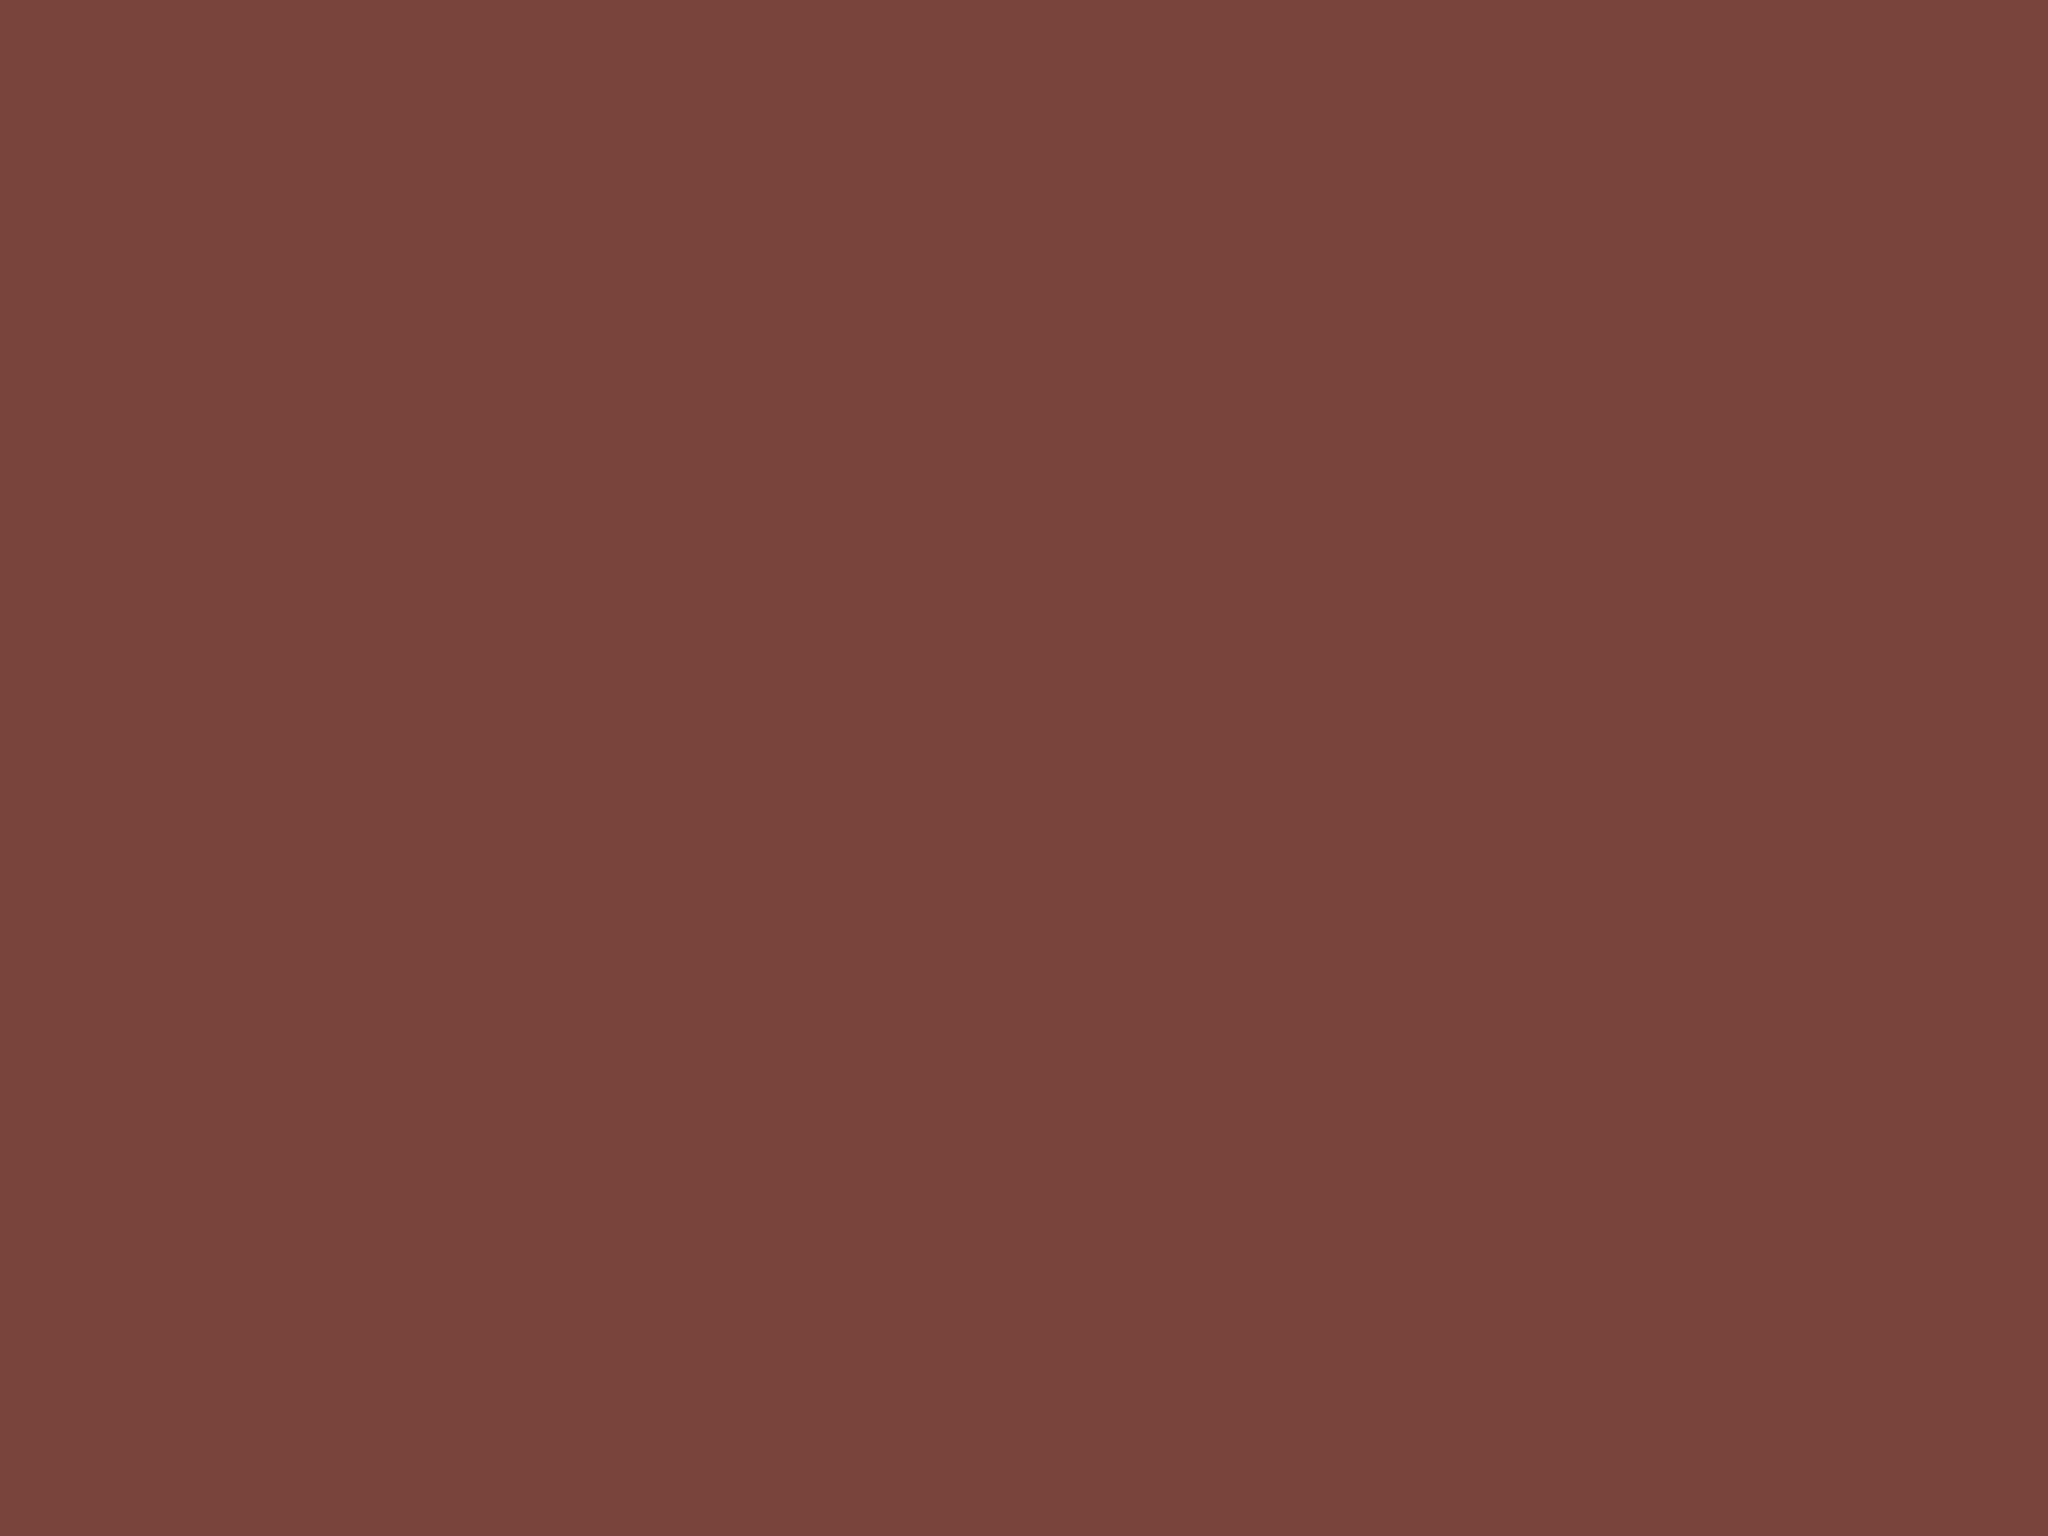 2048x1536 Medium Tuscan Red Solid Color Background